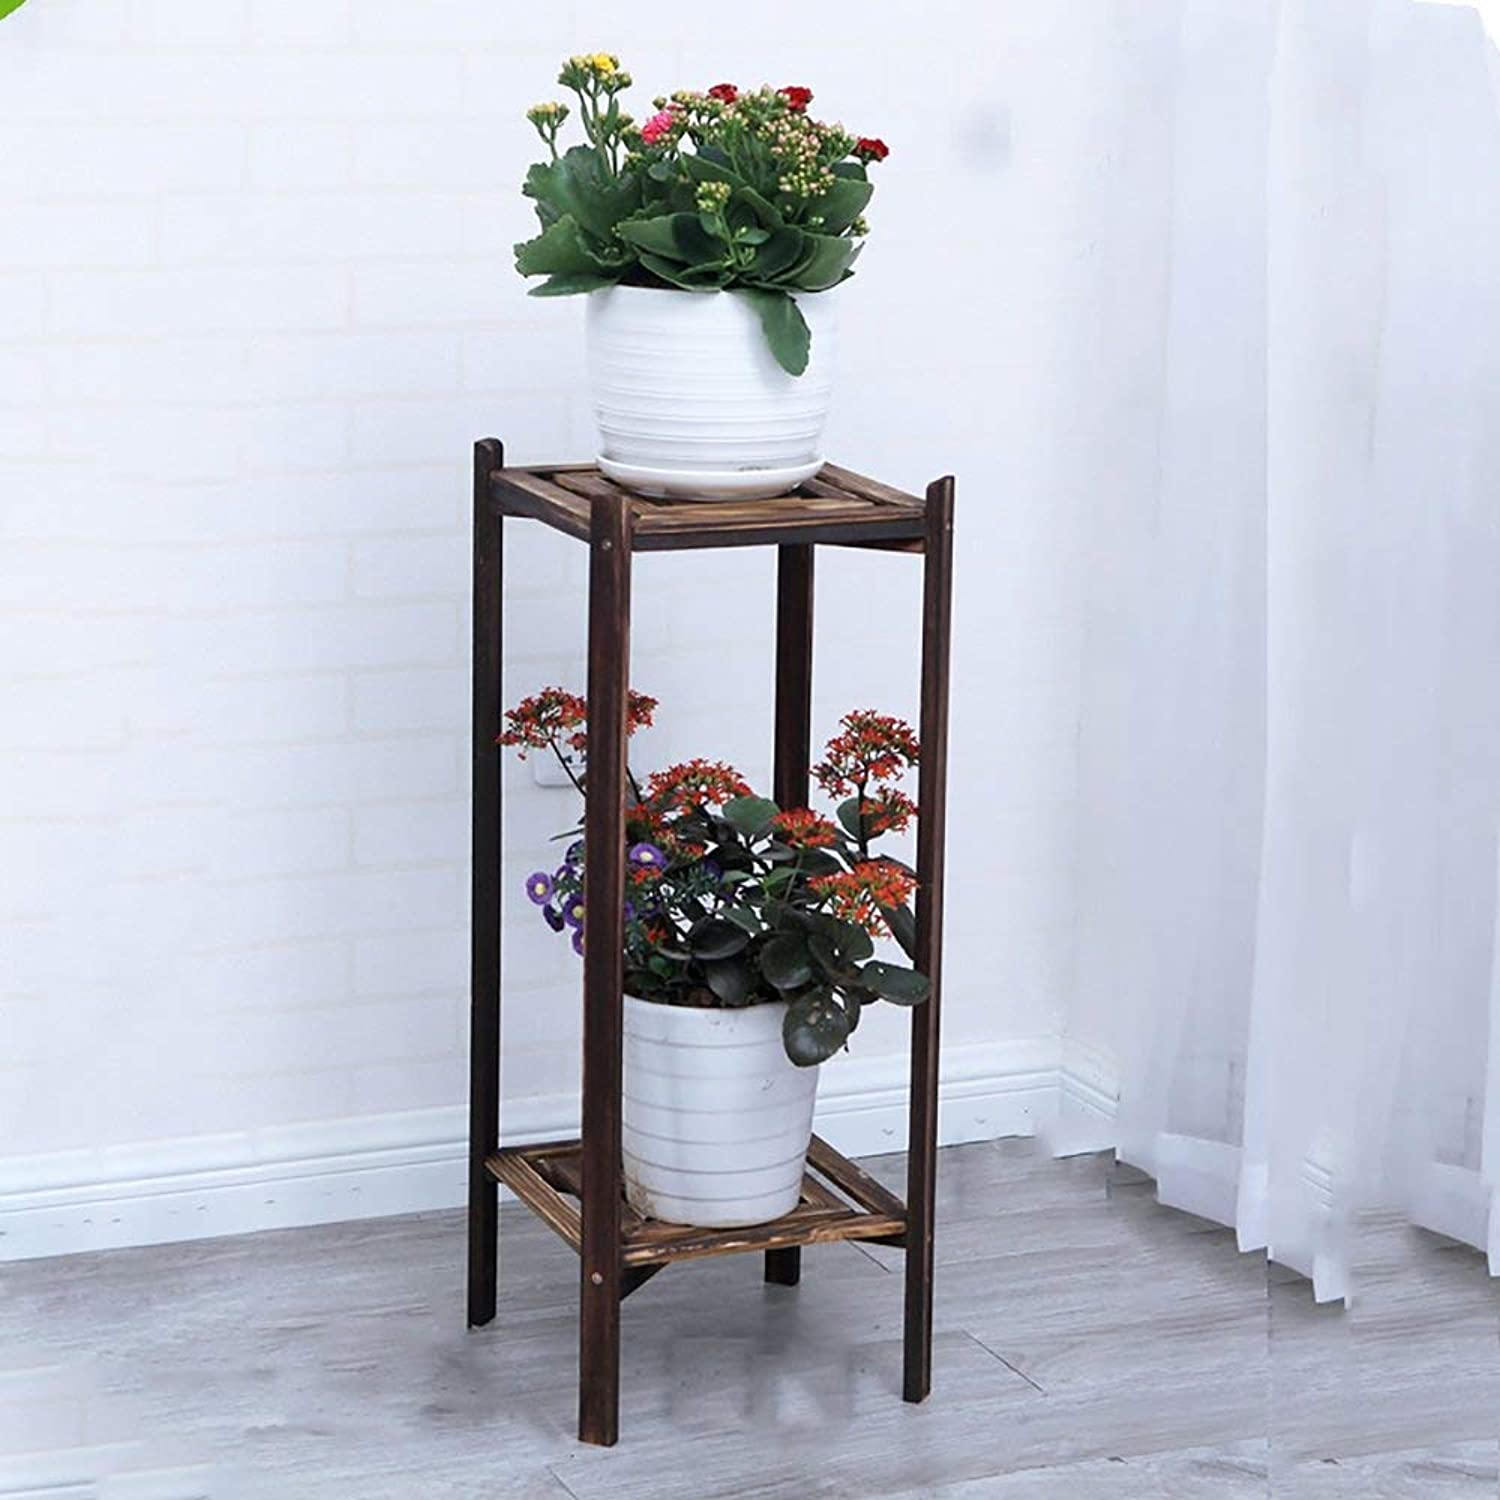 Shelves Organizer for Books Bookcase Bookshelf Ends Flower Stand Plant Shelf Floor-Standing Pure Wood Flower Table Vintage High Foot Living Room Balcony Strong Sturdy, QiXian, 75cm,